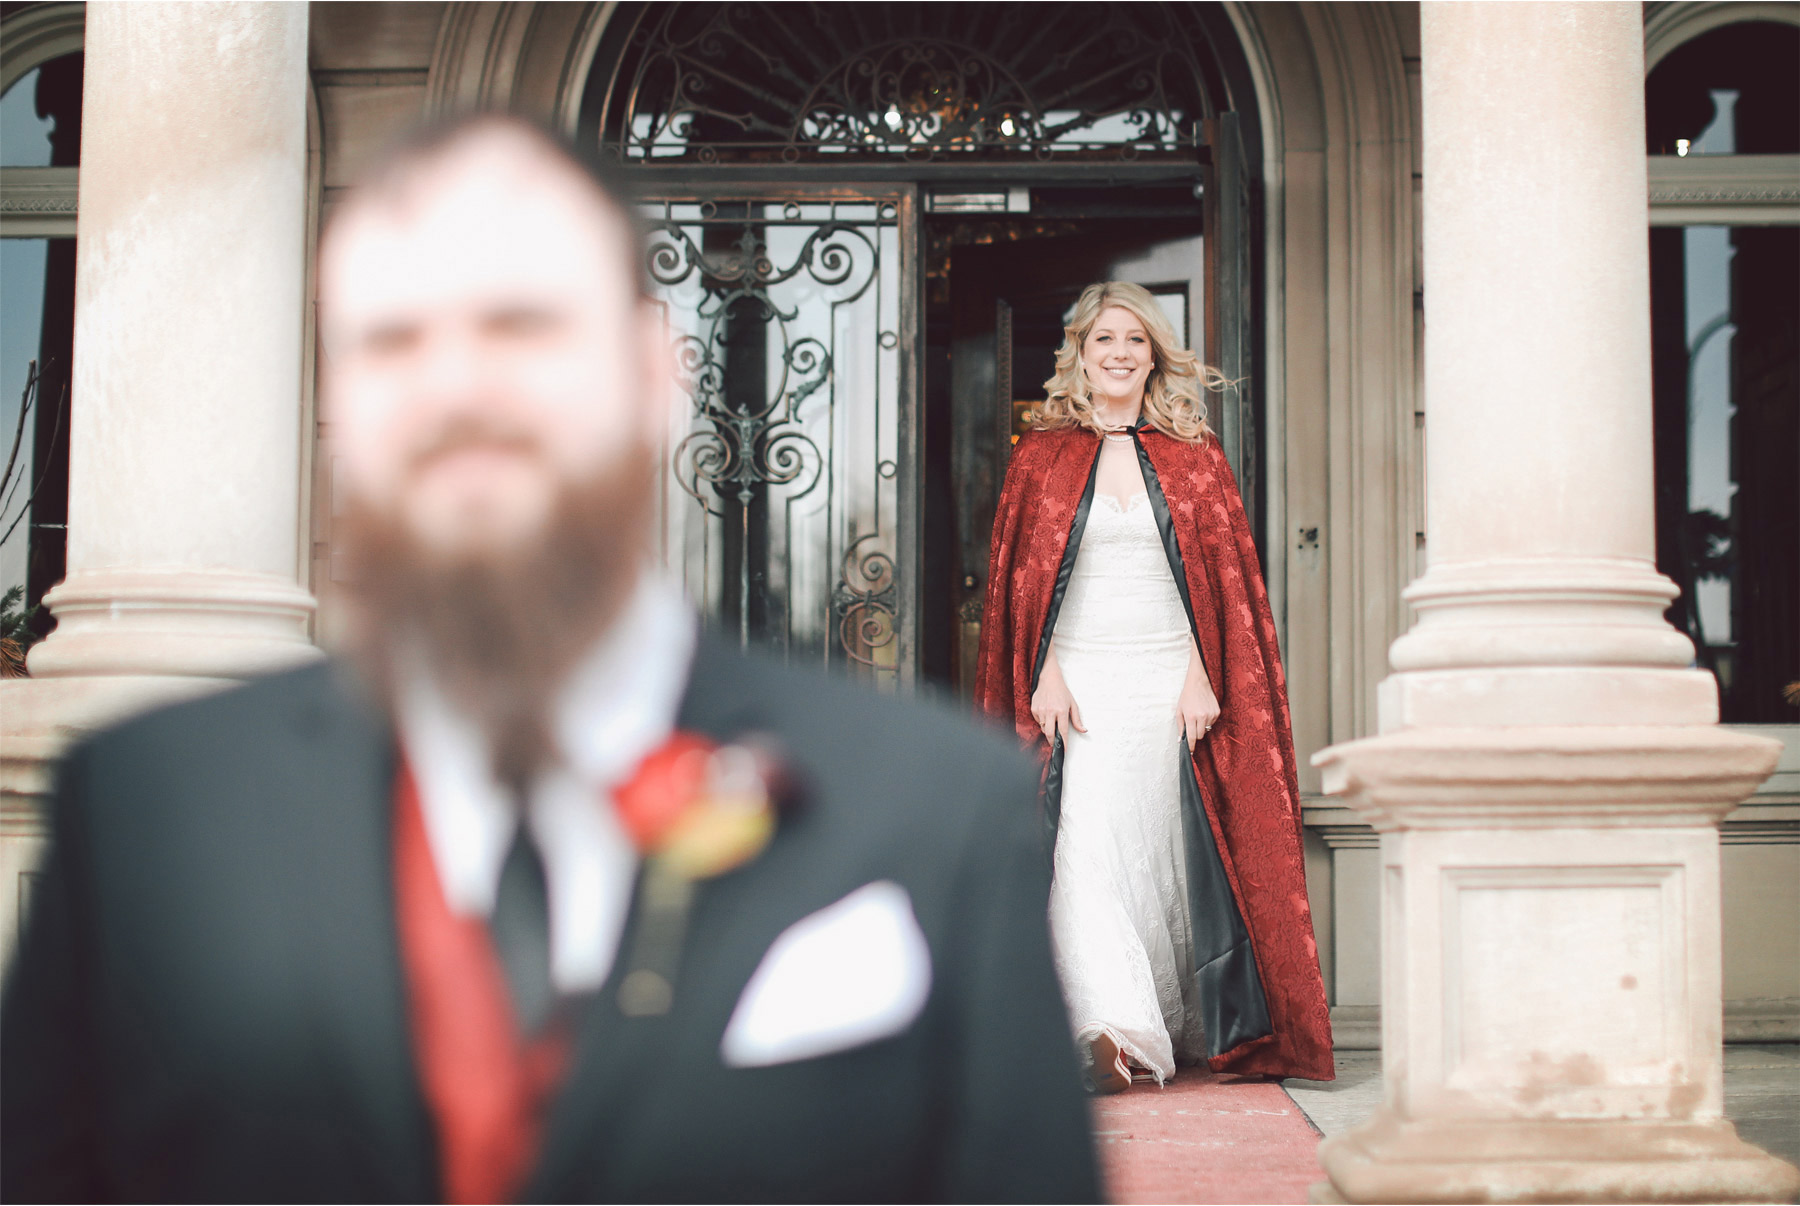 03-Minneapolis-Wedding-Photography-by-Vick-Photography-Bride-Red-Cape-Shayla-and-Kyle.jpg